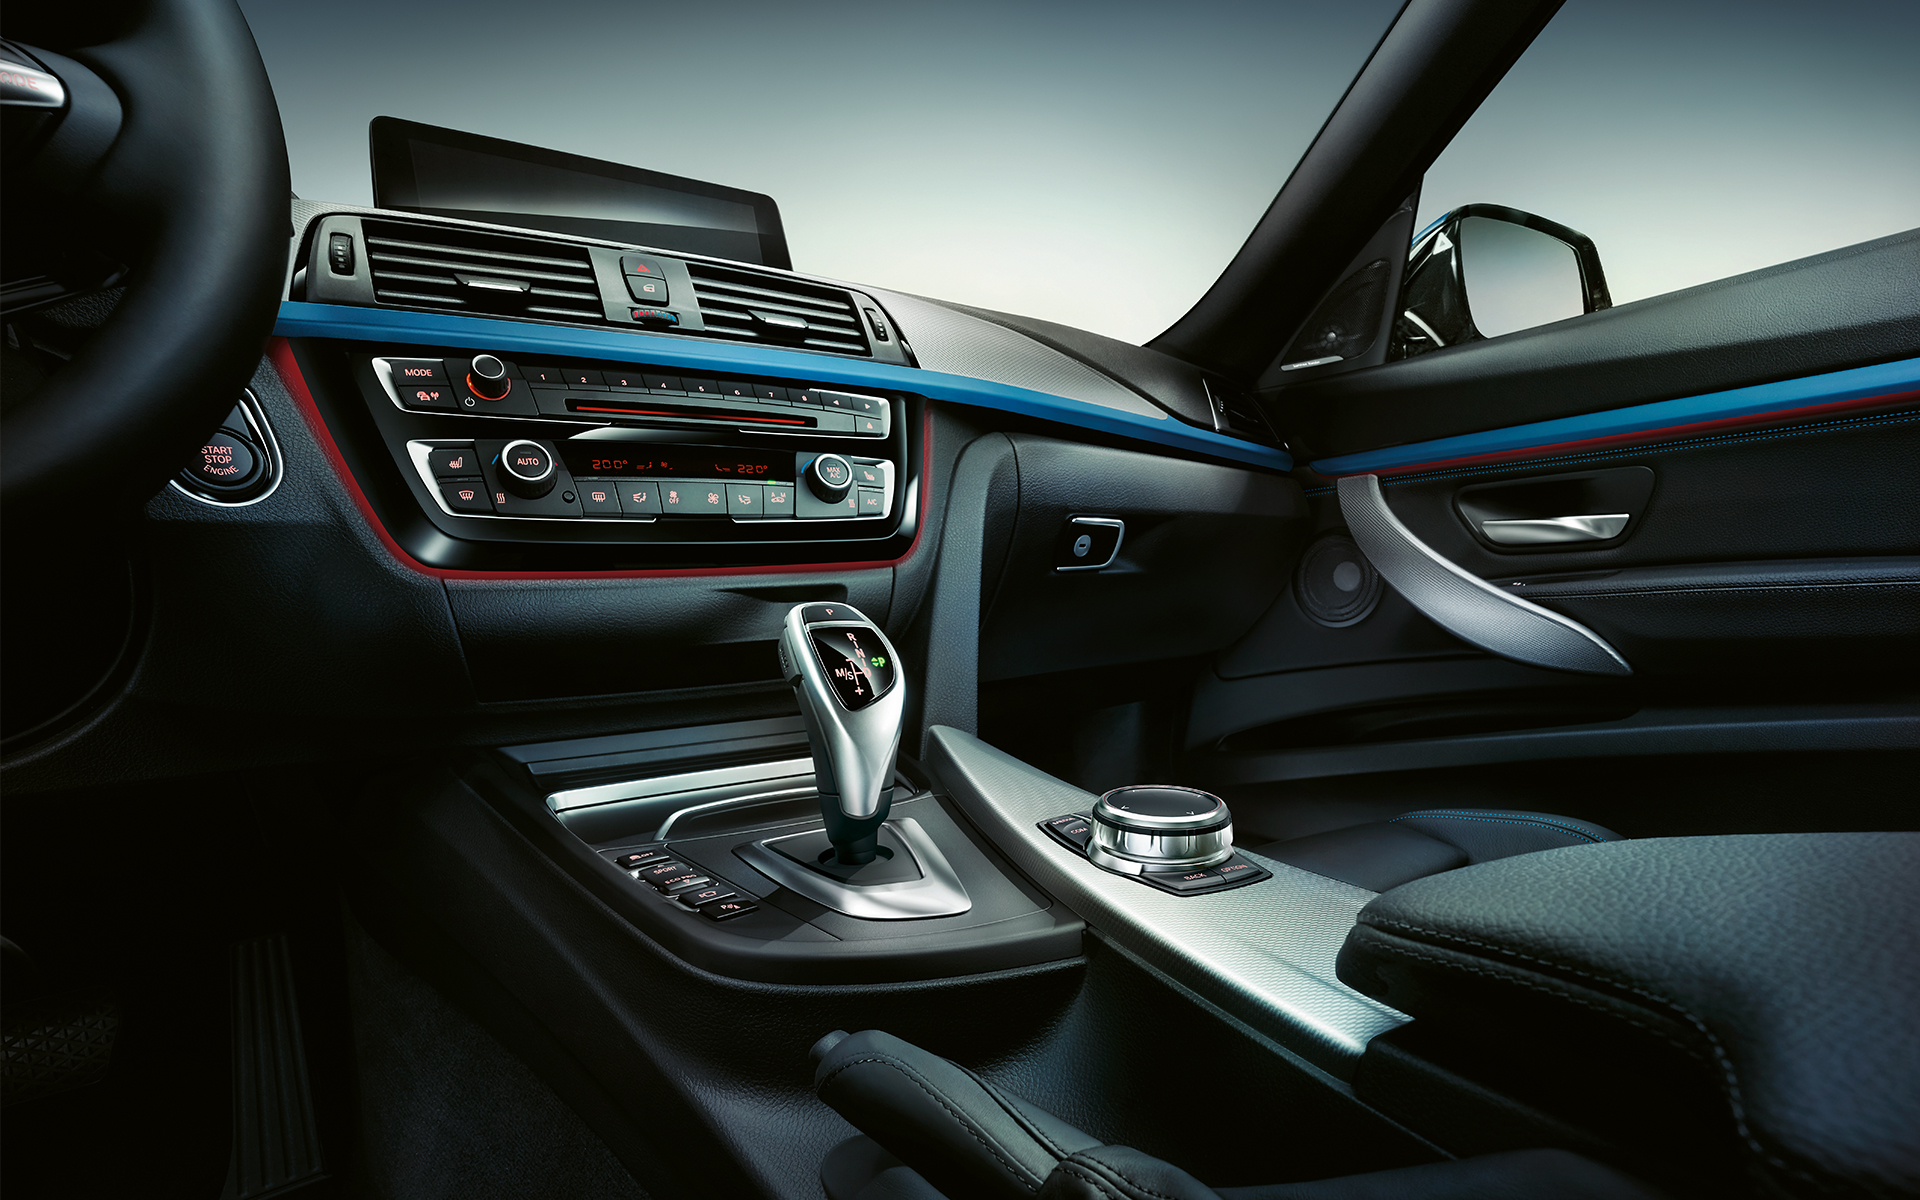 BMW 3 Series Gran Turismo: Clutch and ConnectedDrive features.